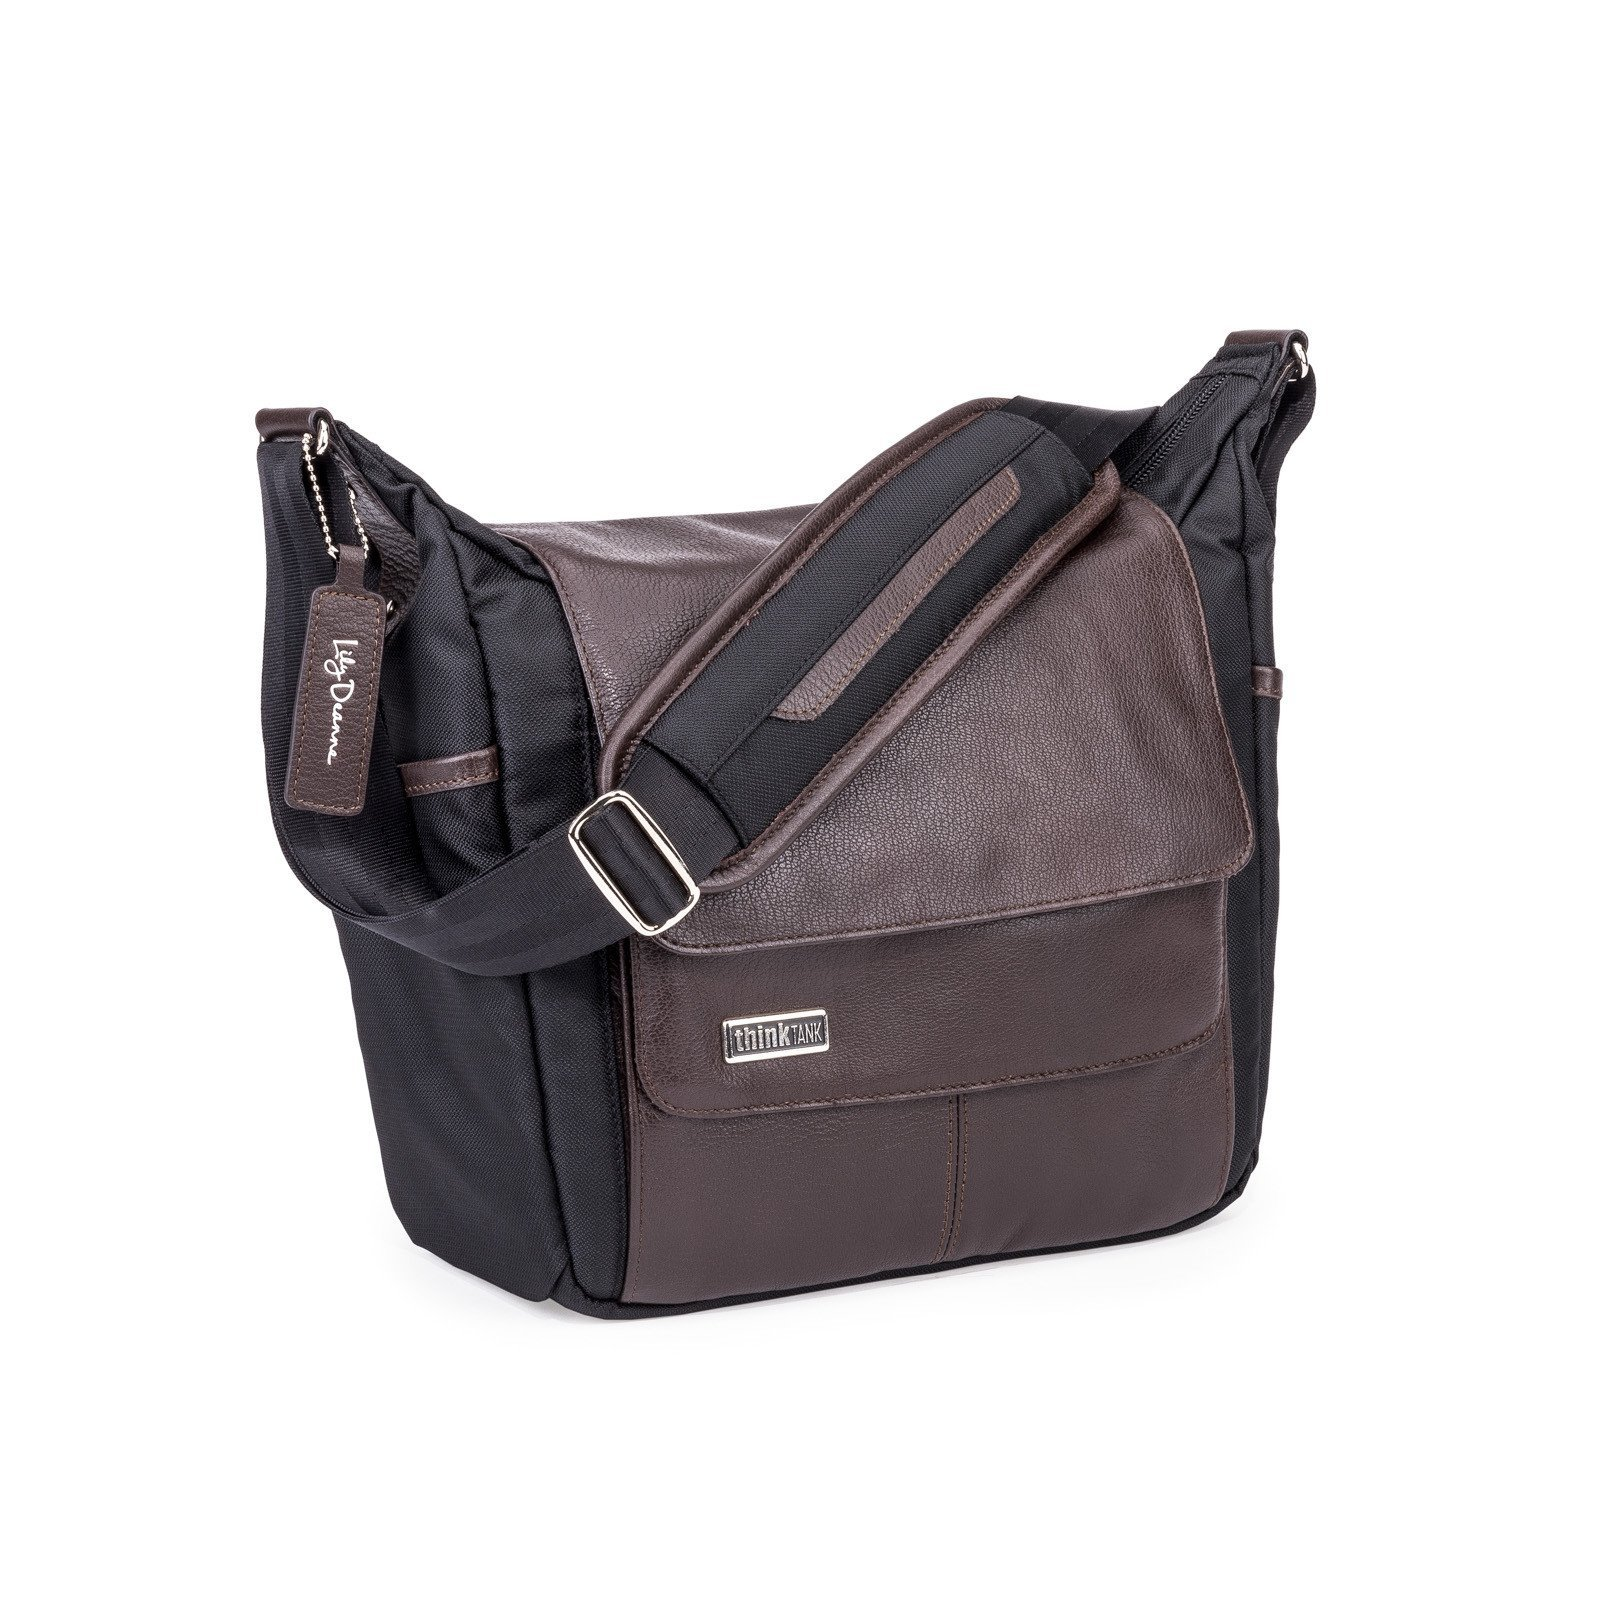 Think Tank Photo Lily Deanne Lucido Premium-Quality Camera Bag (Chestnut) by Think Tank